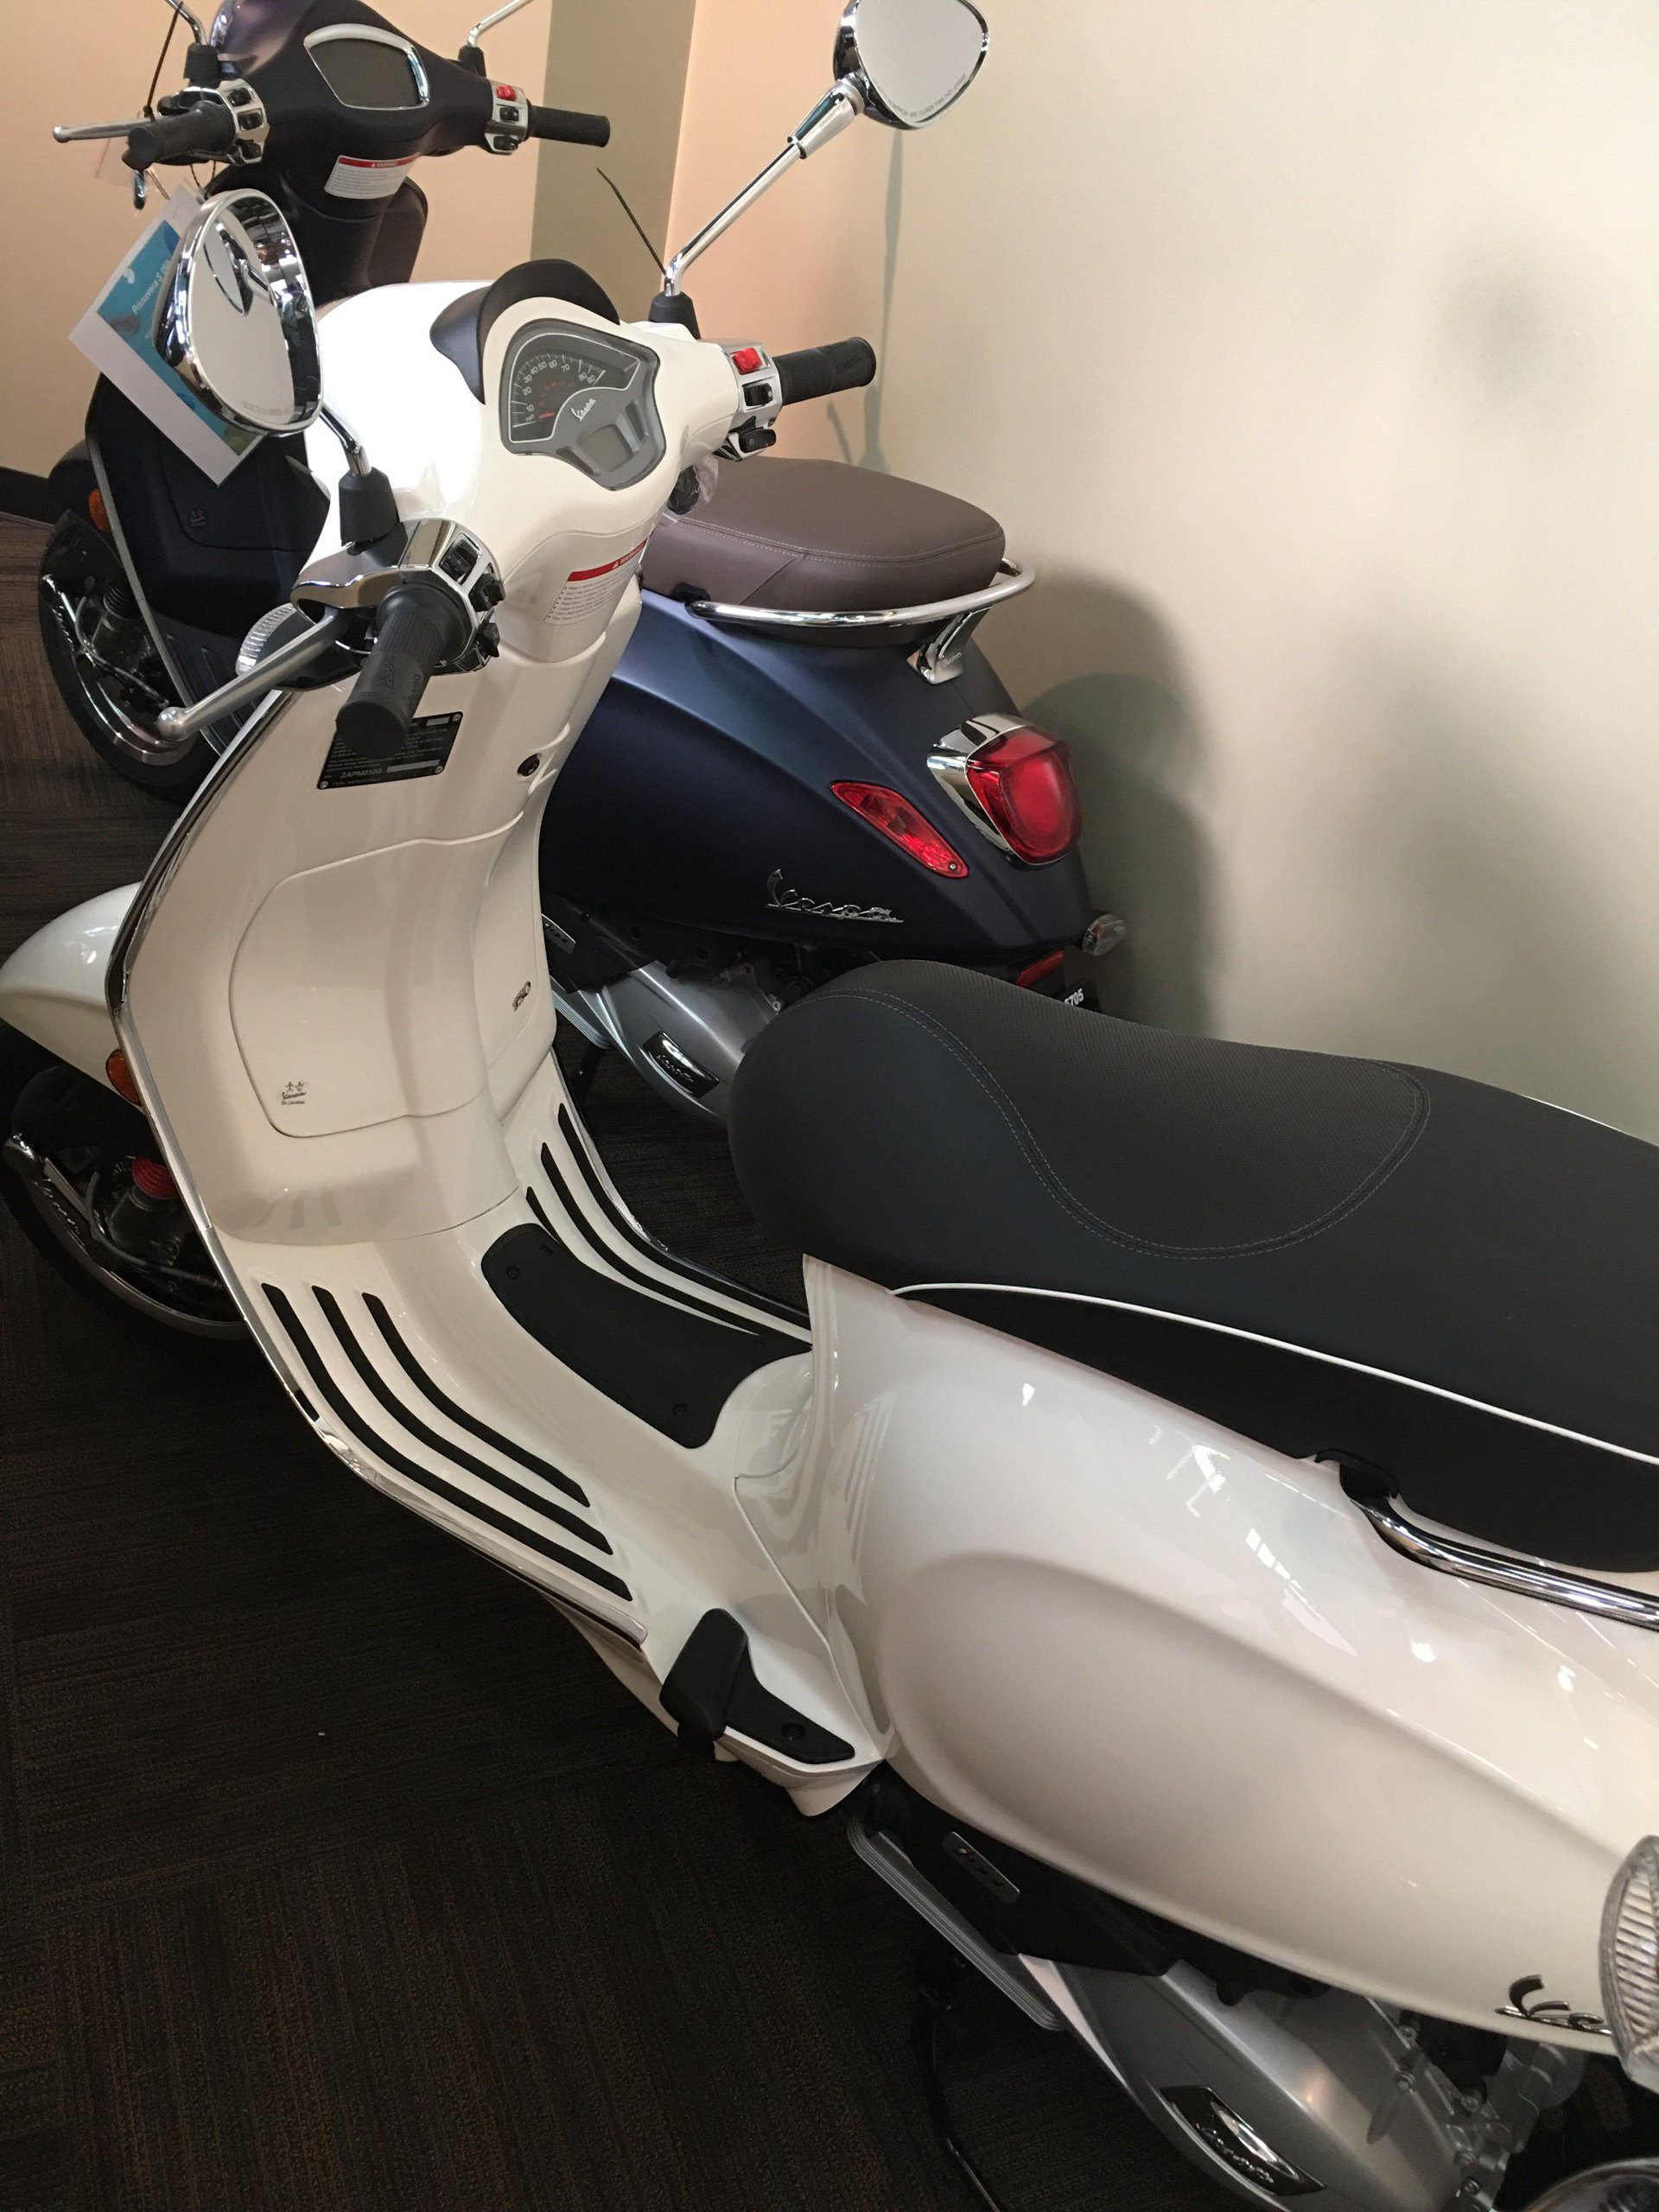 2019 Vespa Sprint 150 in Woodstock, Illinois - Photo 1